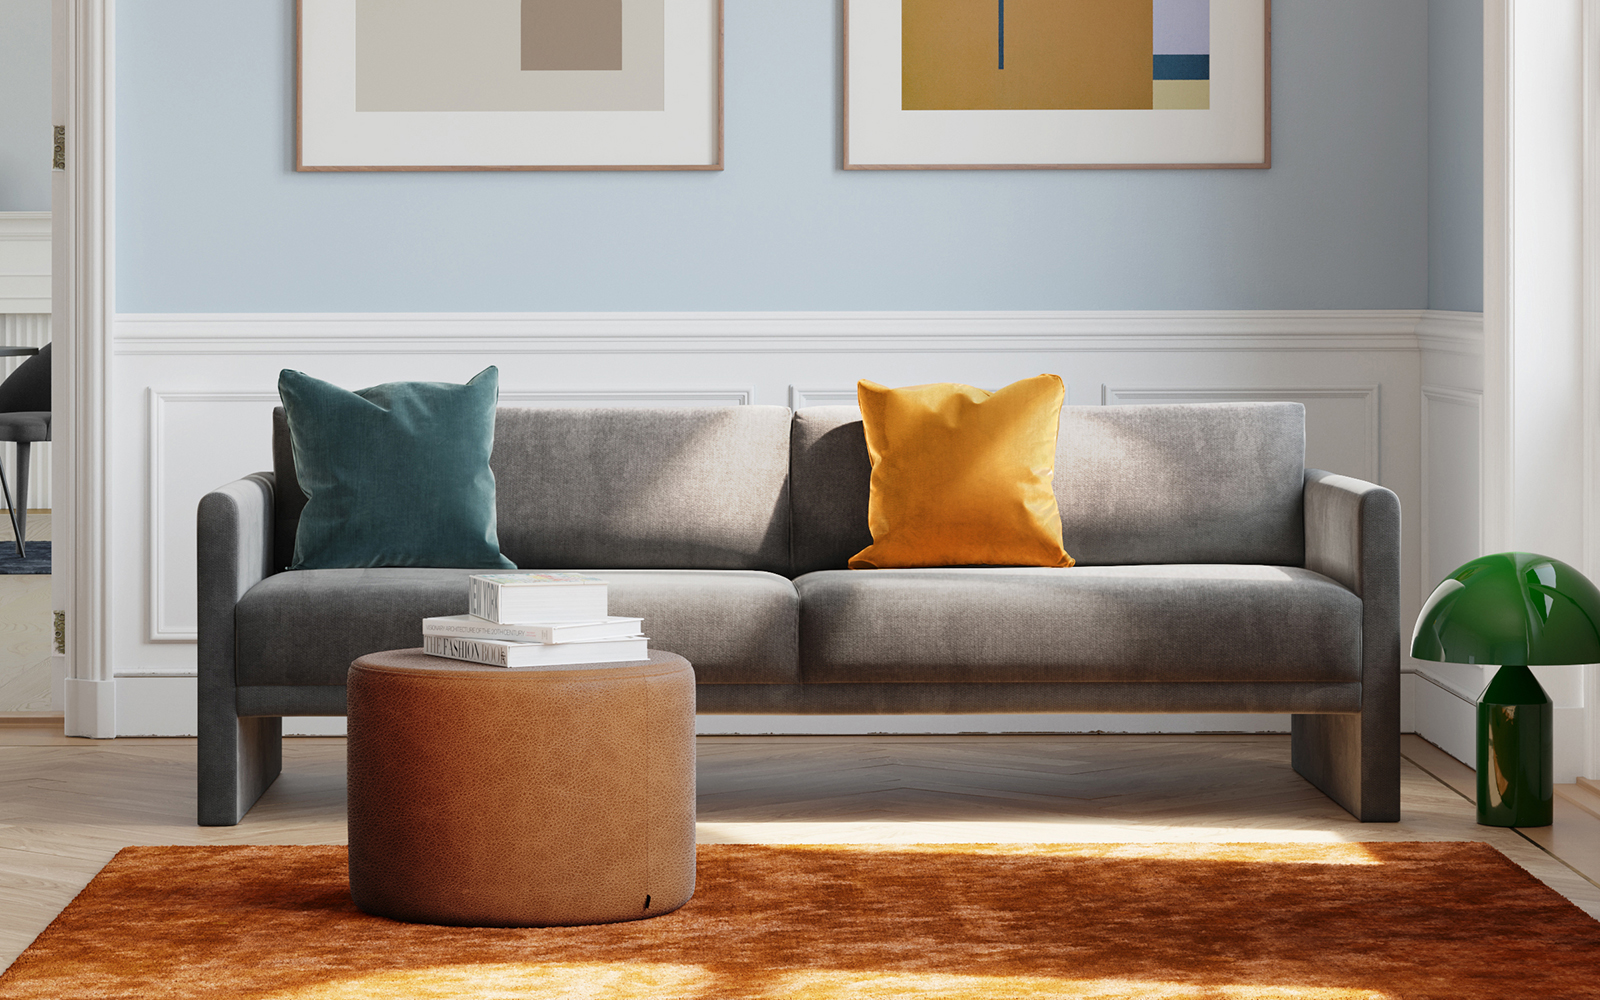 A Step-by-Step Guide For How To Design Your Own Sofa With SOFACOMPANY